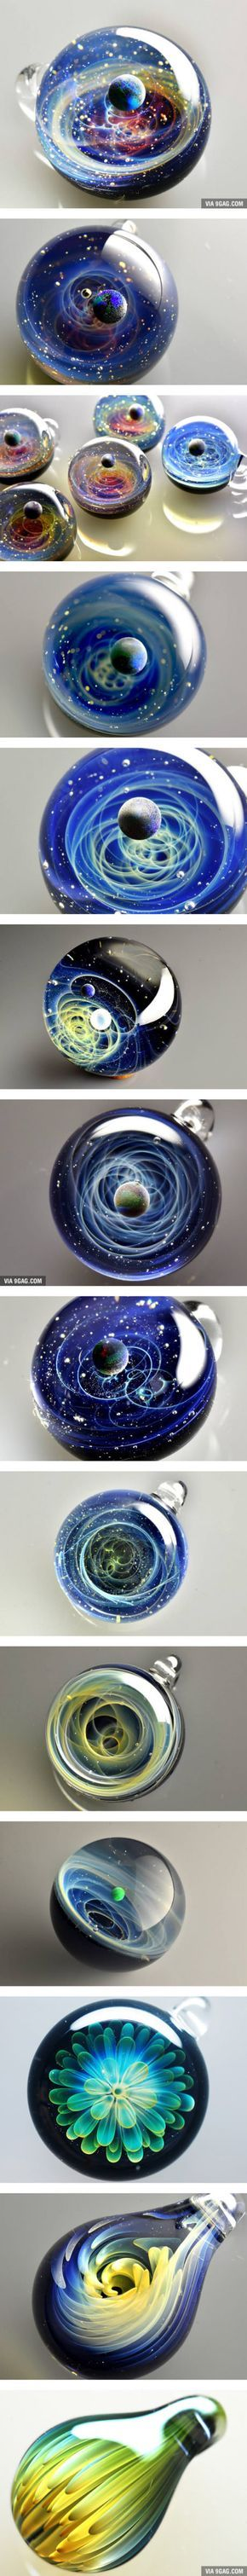 Extraordinary Space Glass With Solar Systems And Flowers